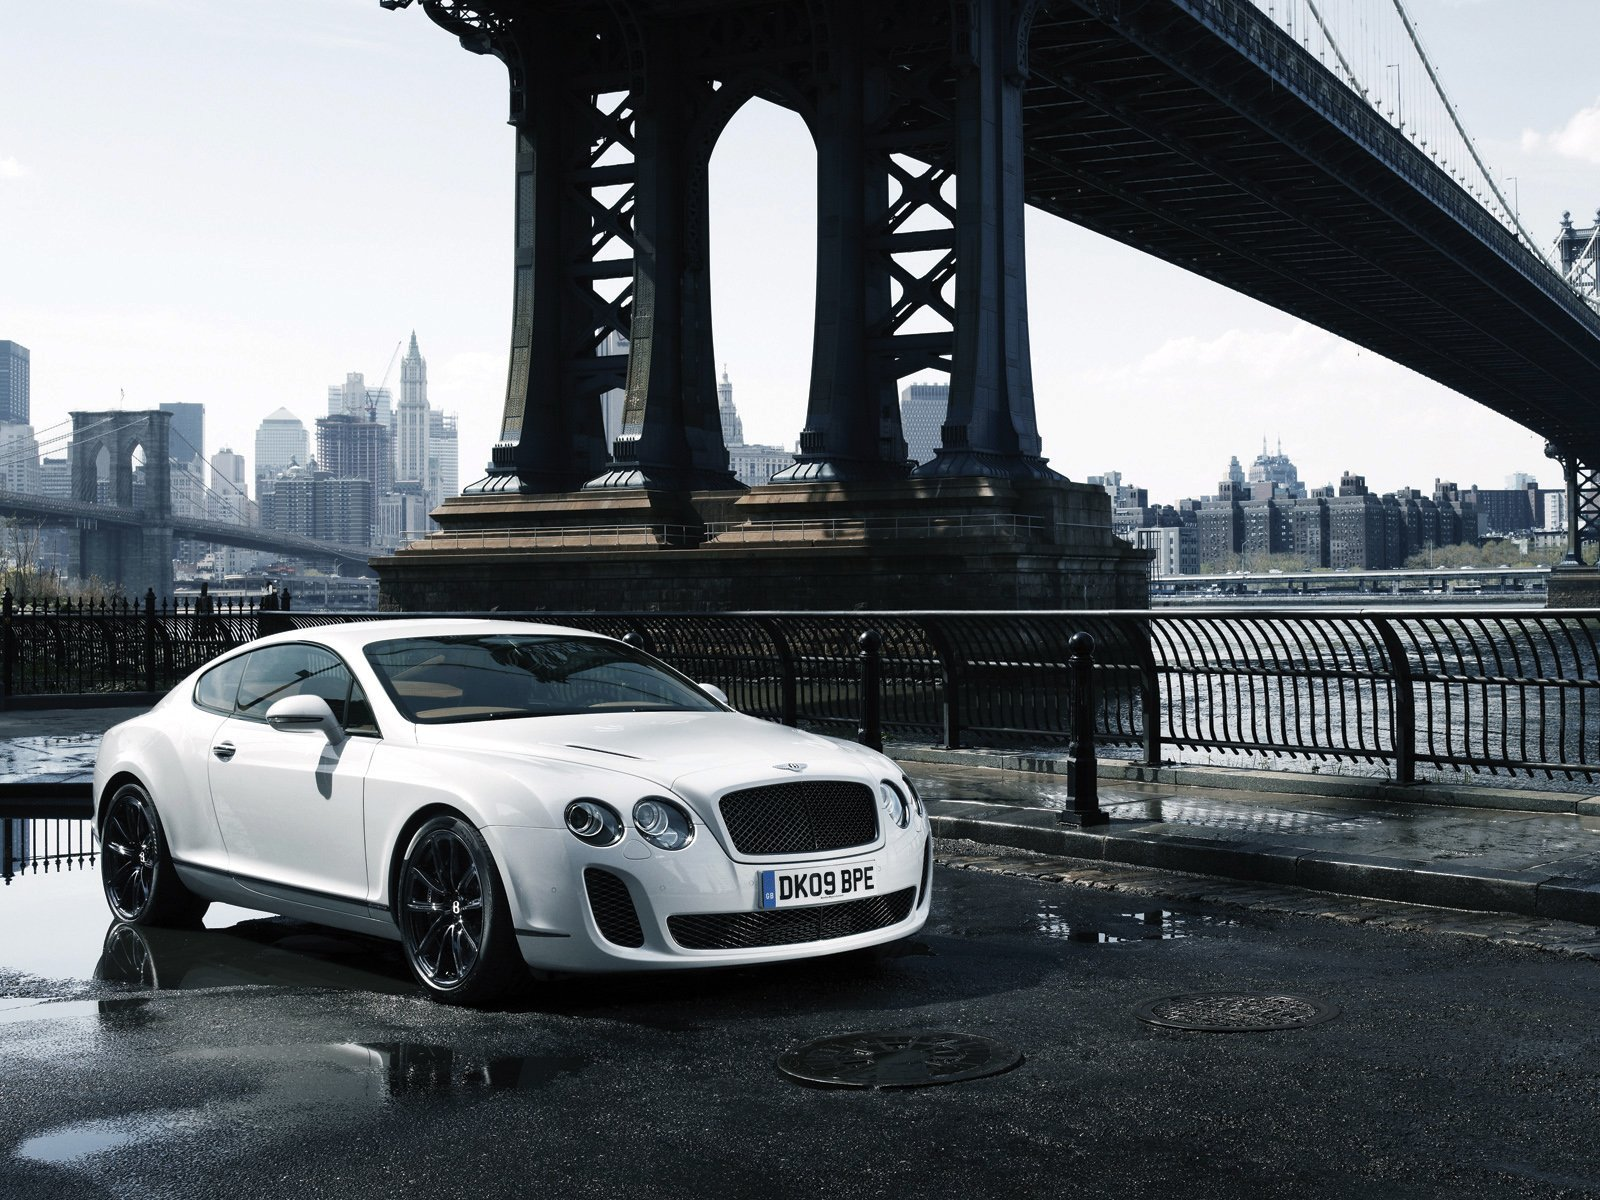 174 Bentley Continental Gt Hd Wallpapers Background Images Wallpaper Abyss